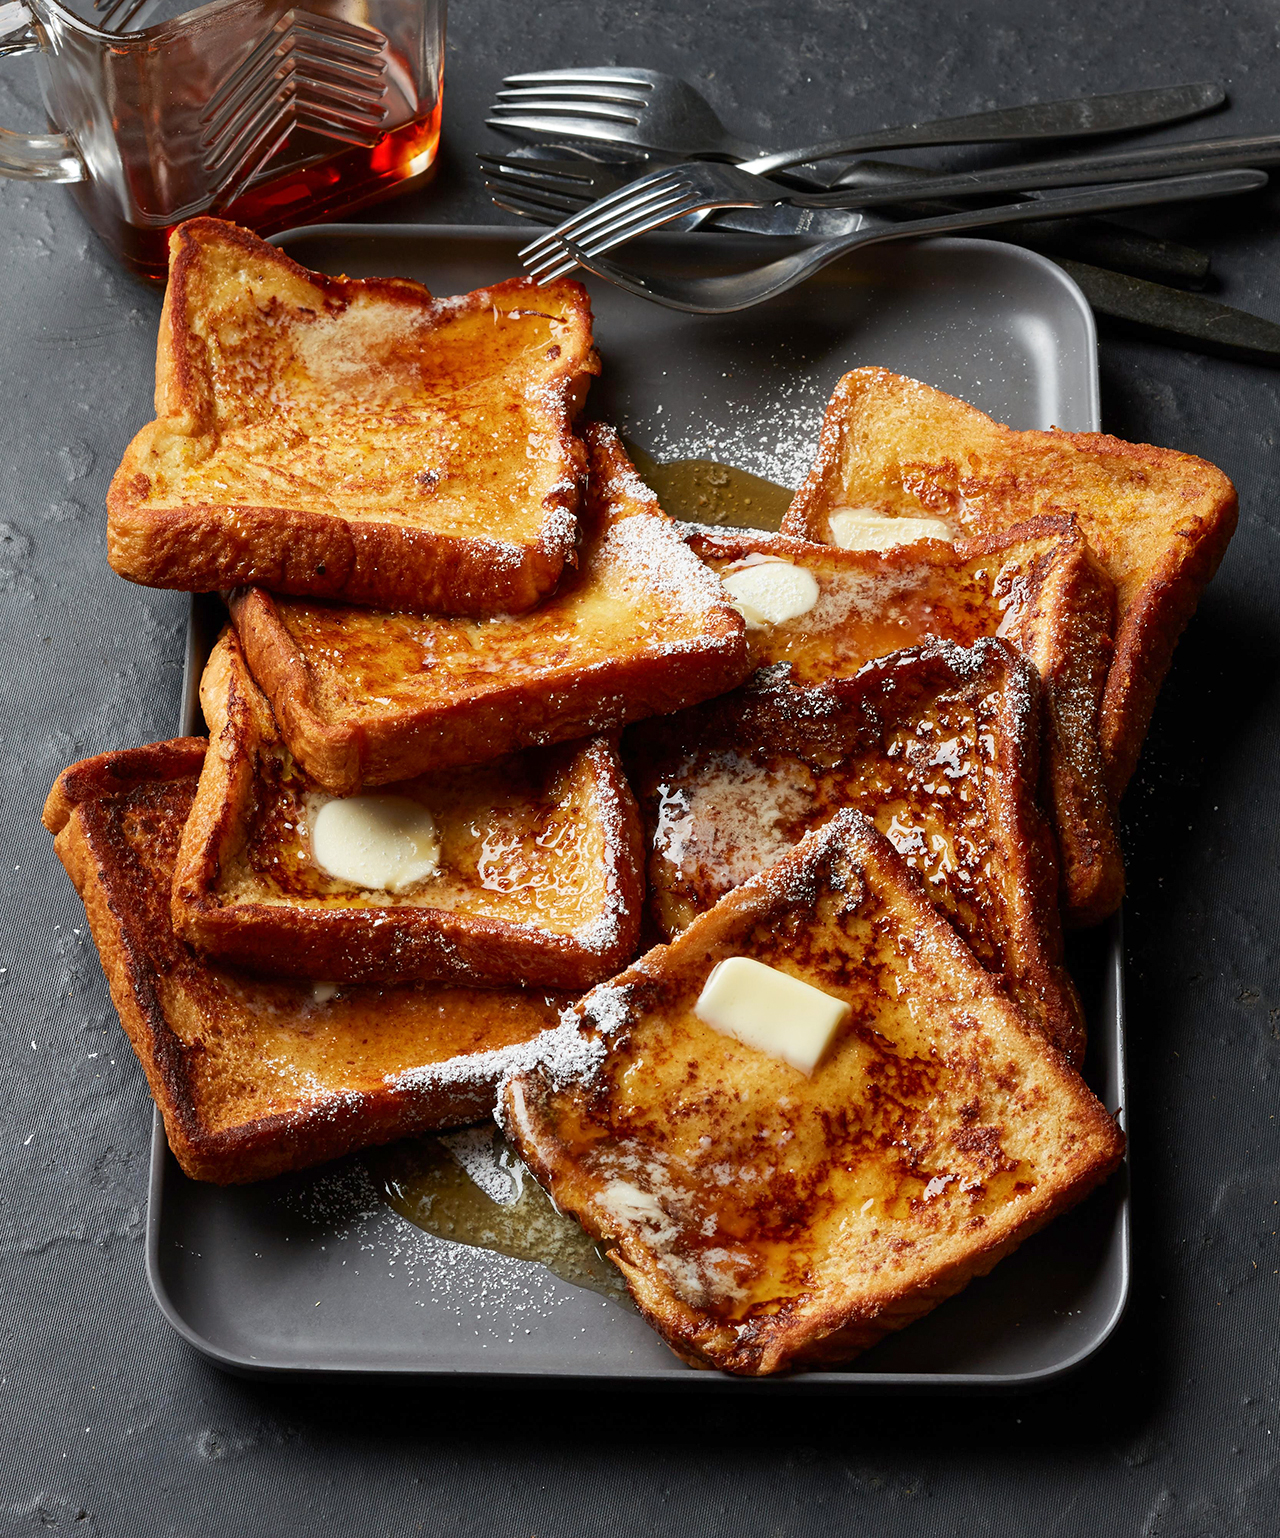 Classic Homemade French Toast Topped with Butter and Syrup